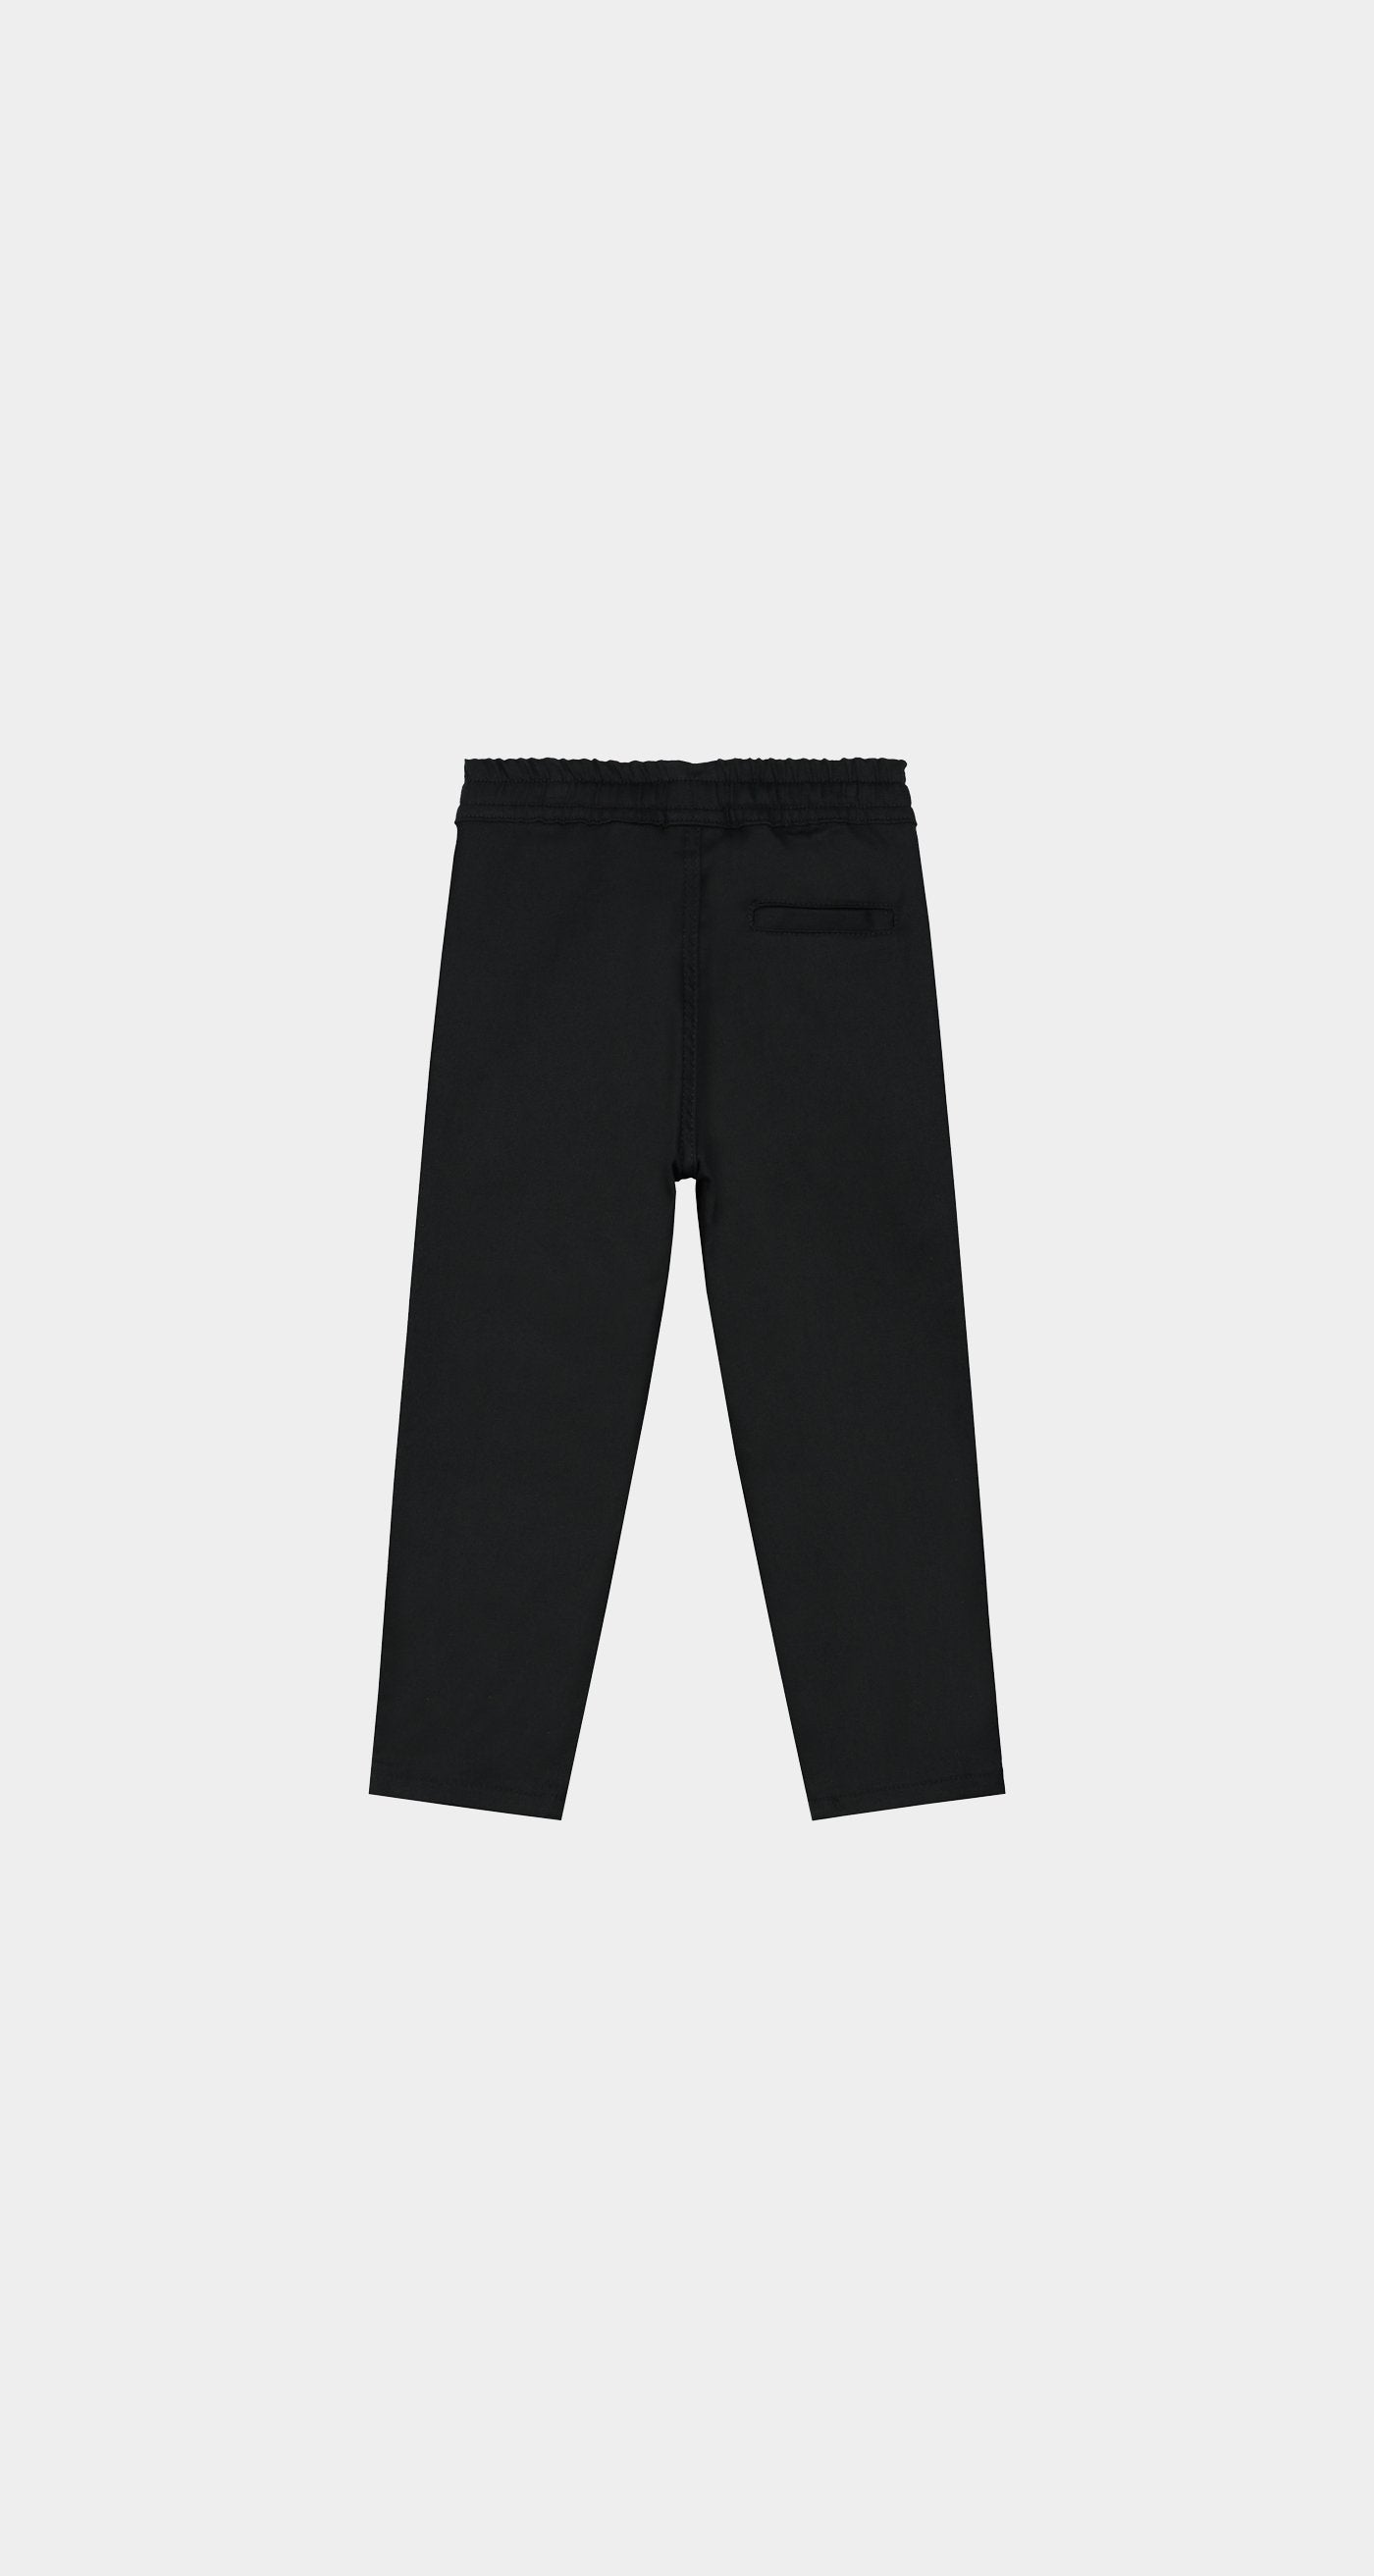 Daily Paper - Black Kids Cargo Pants NEW - Rear